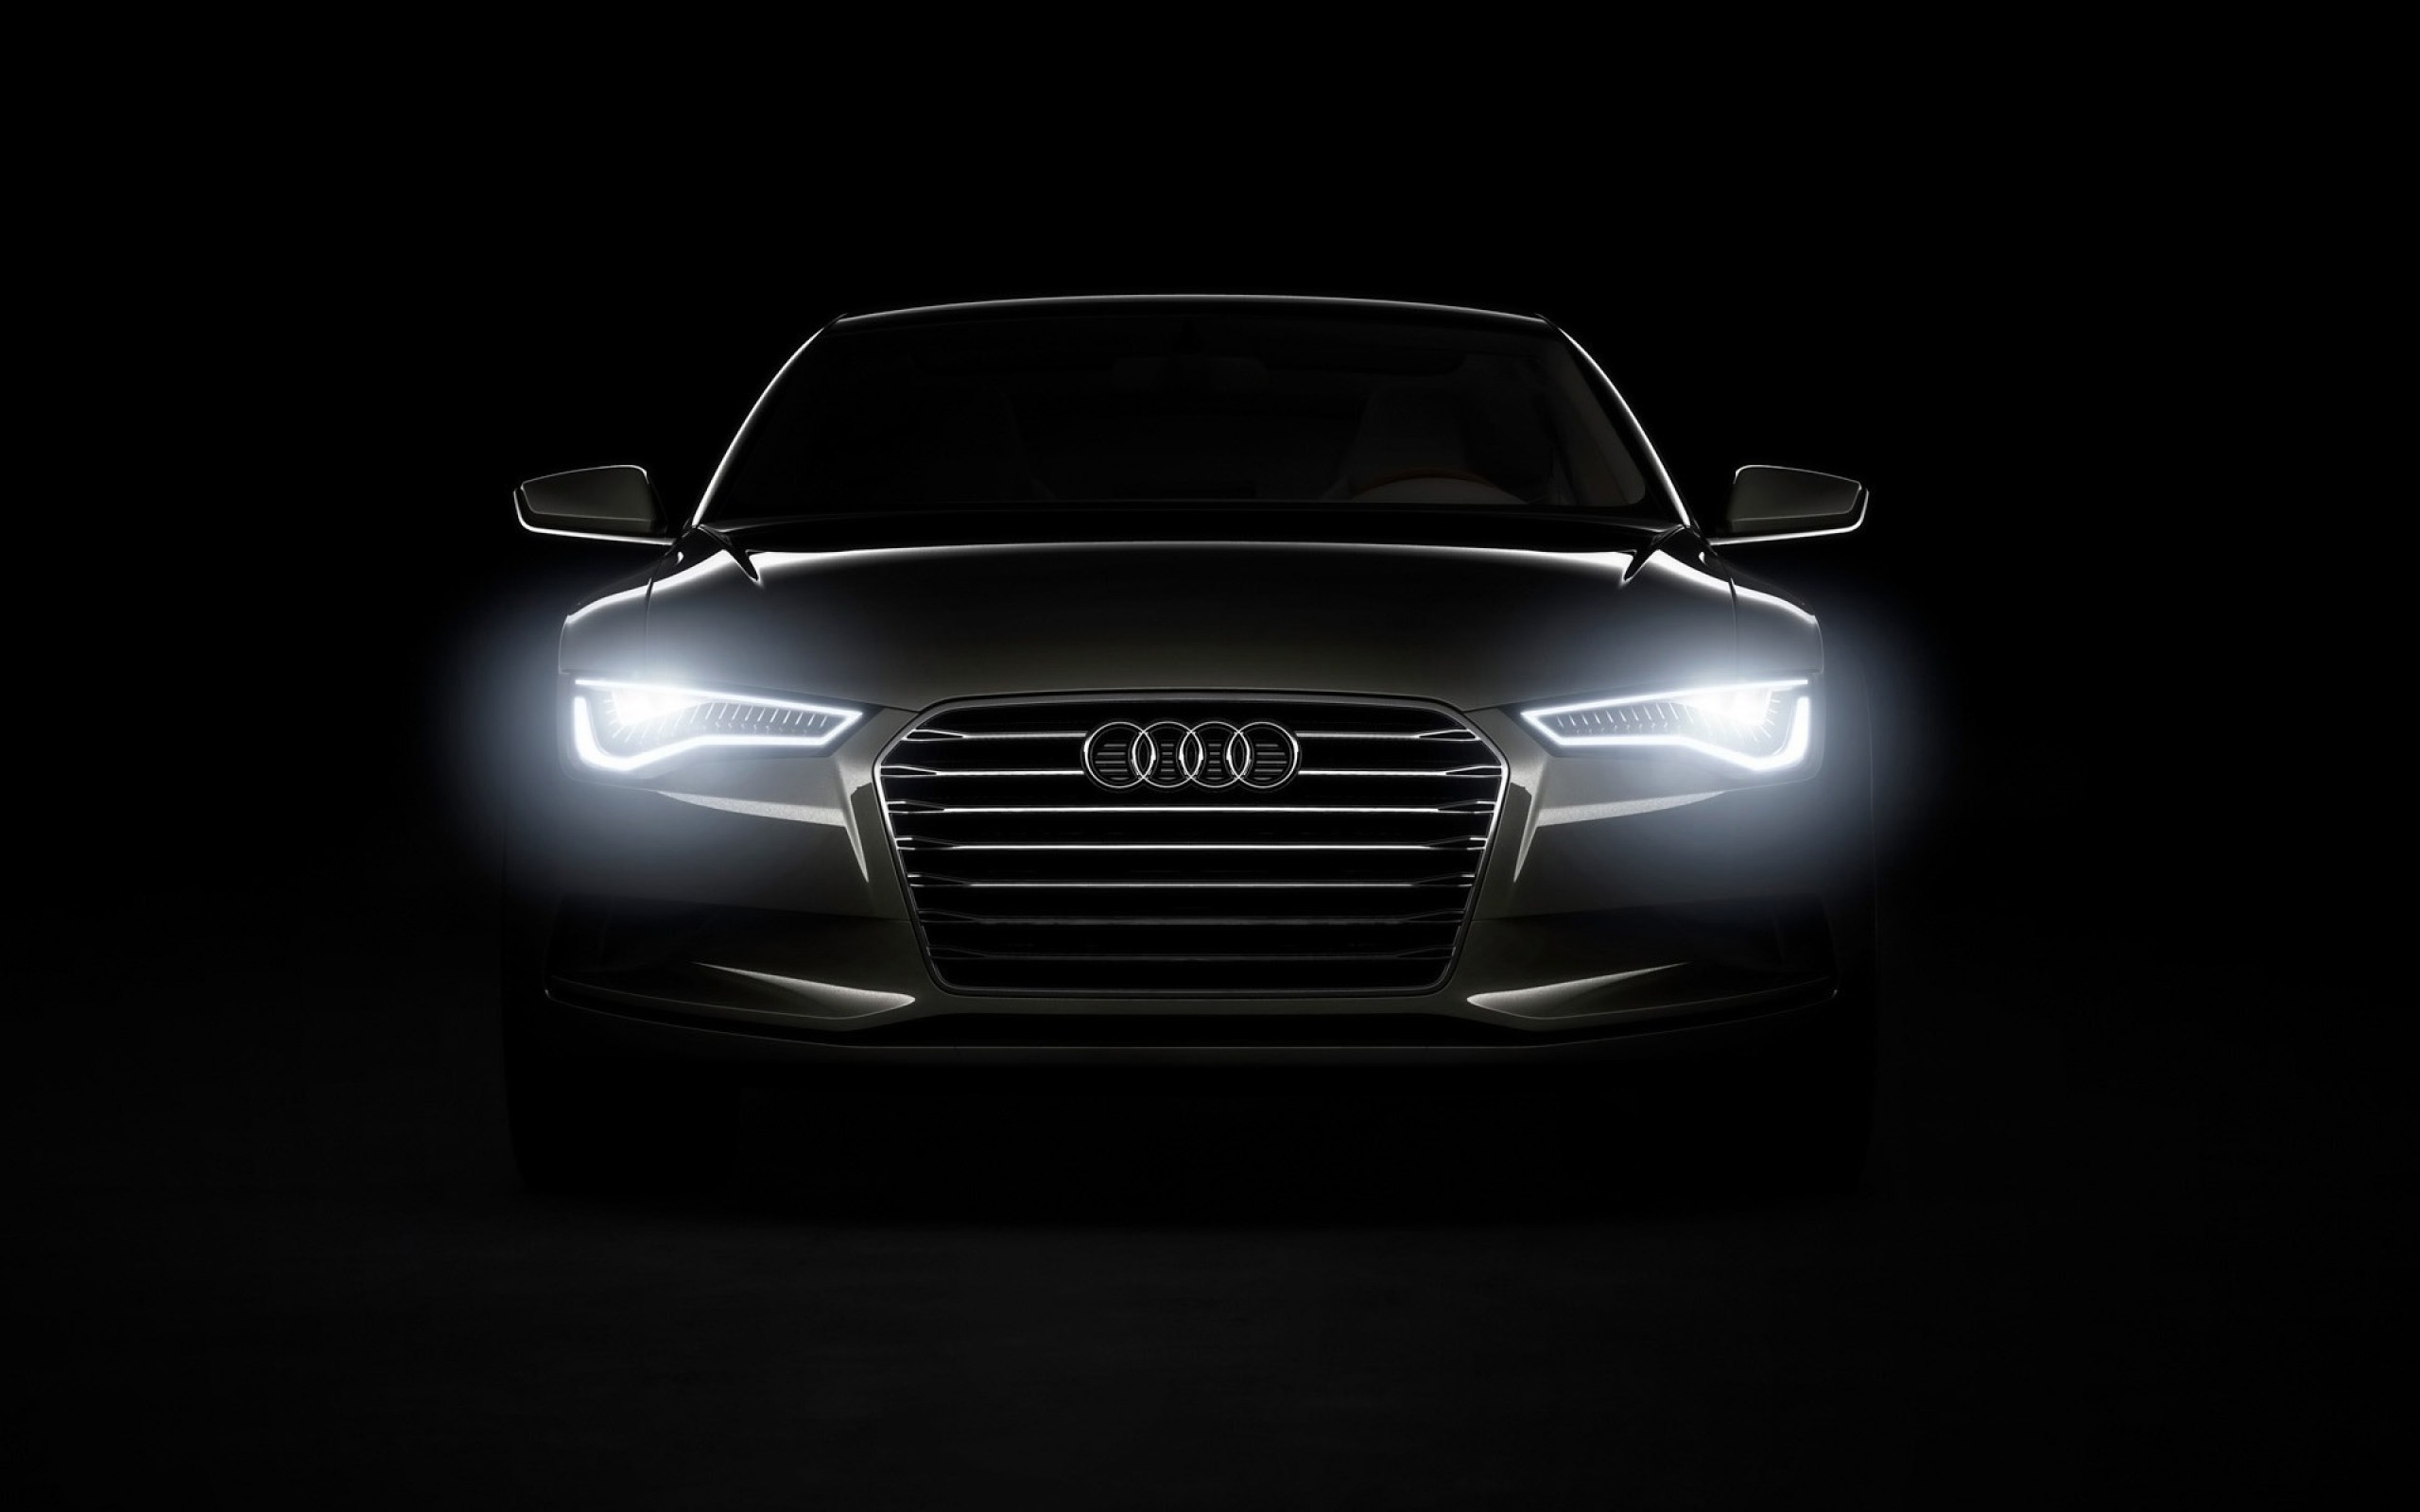 Audi Headlights in the Dark 380.38 Kb